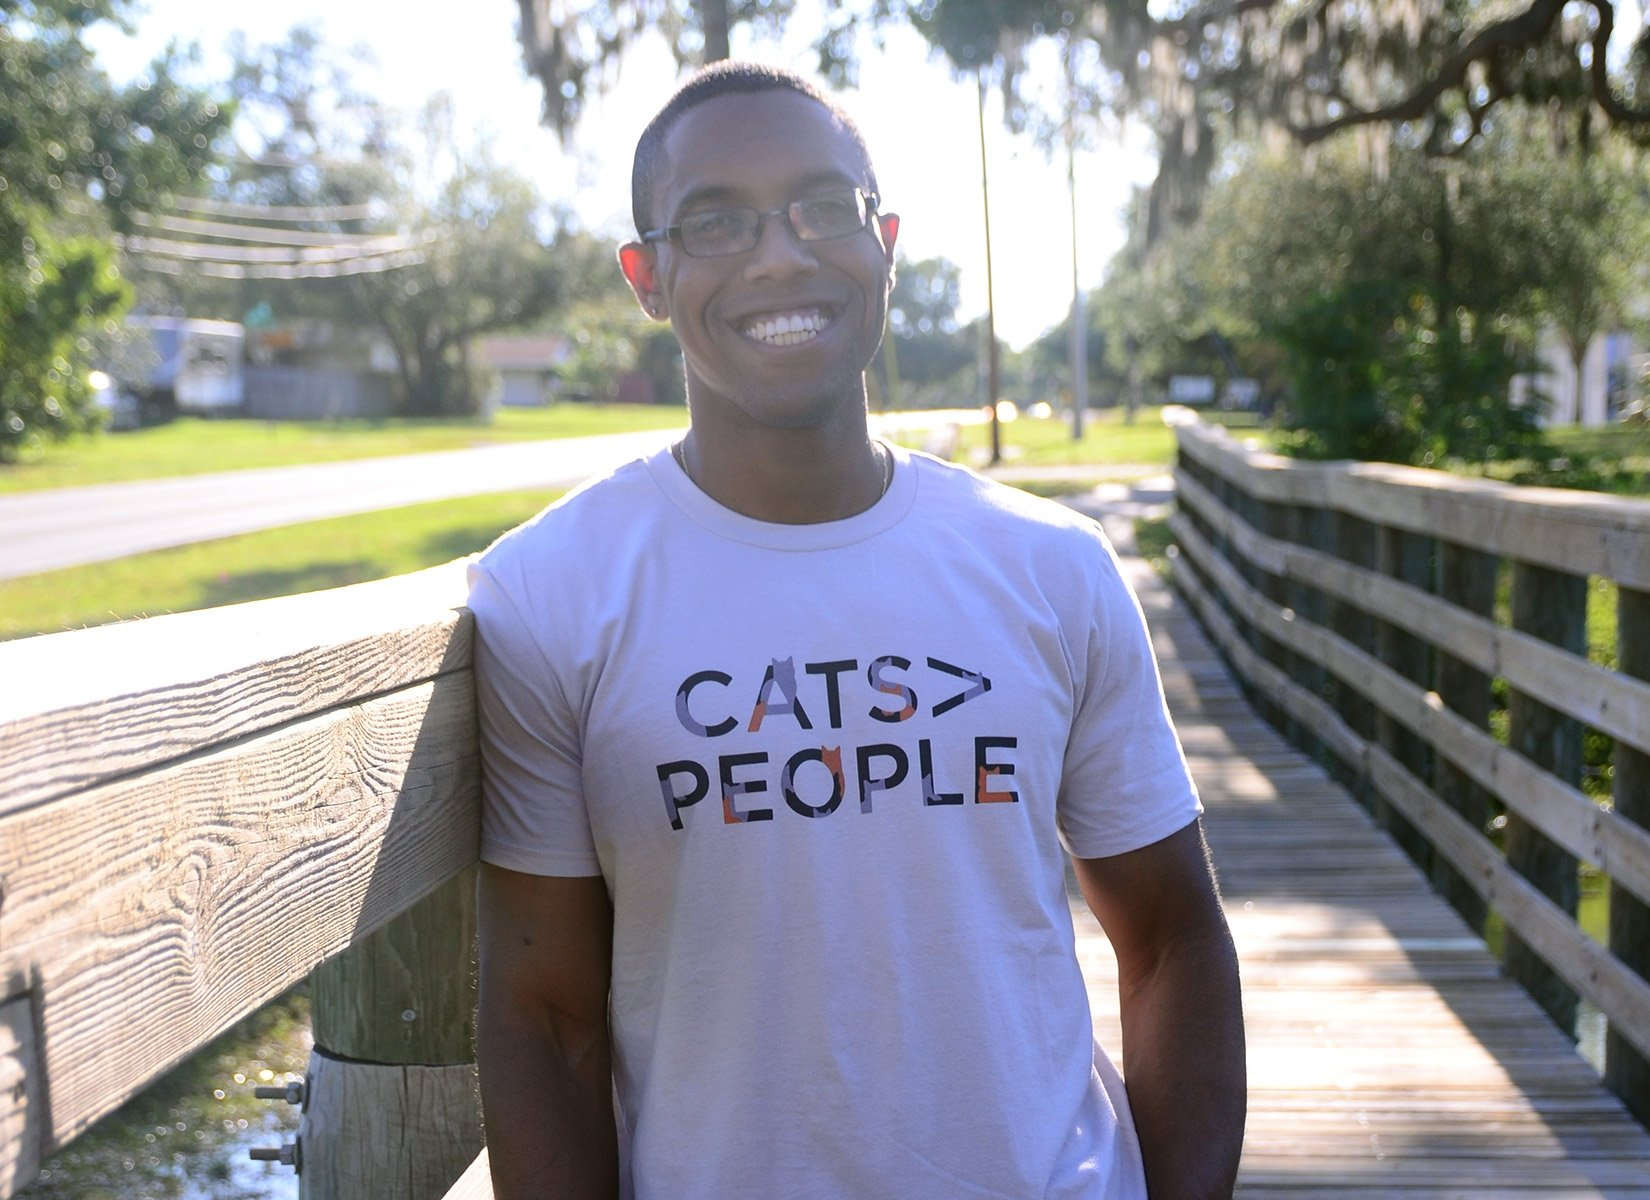 Cats>People on Mens T-Shirt